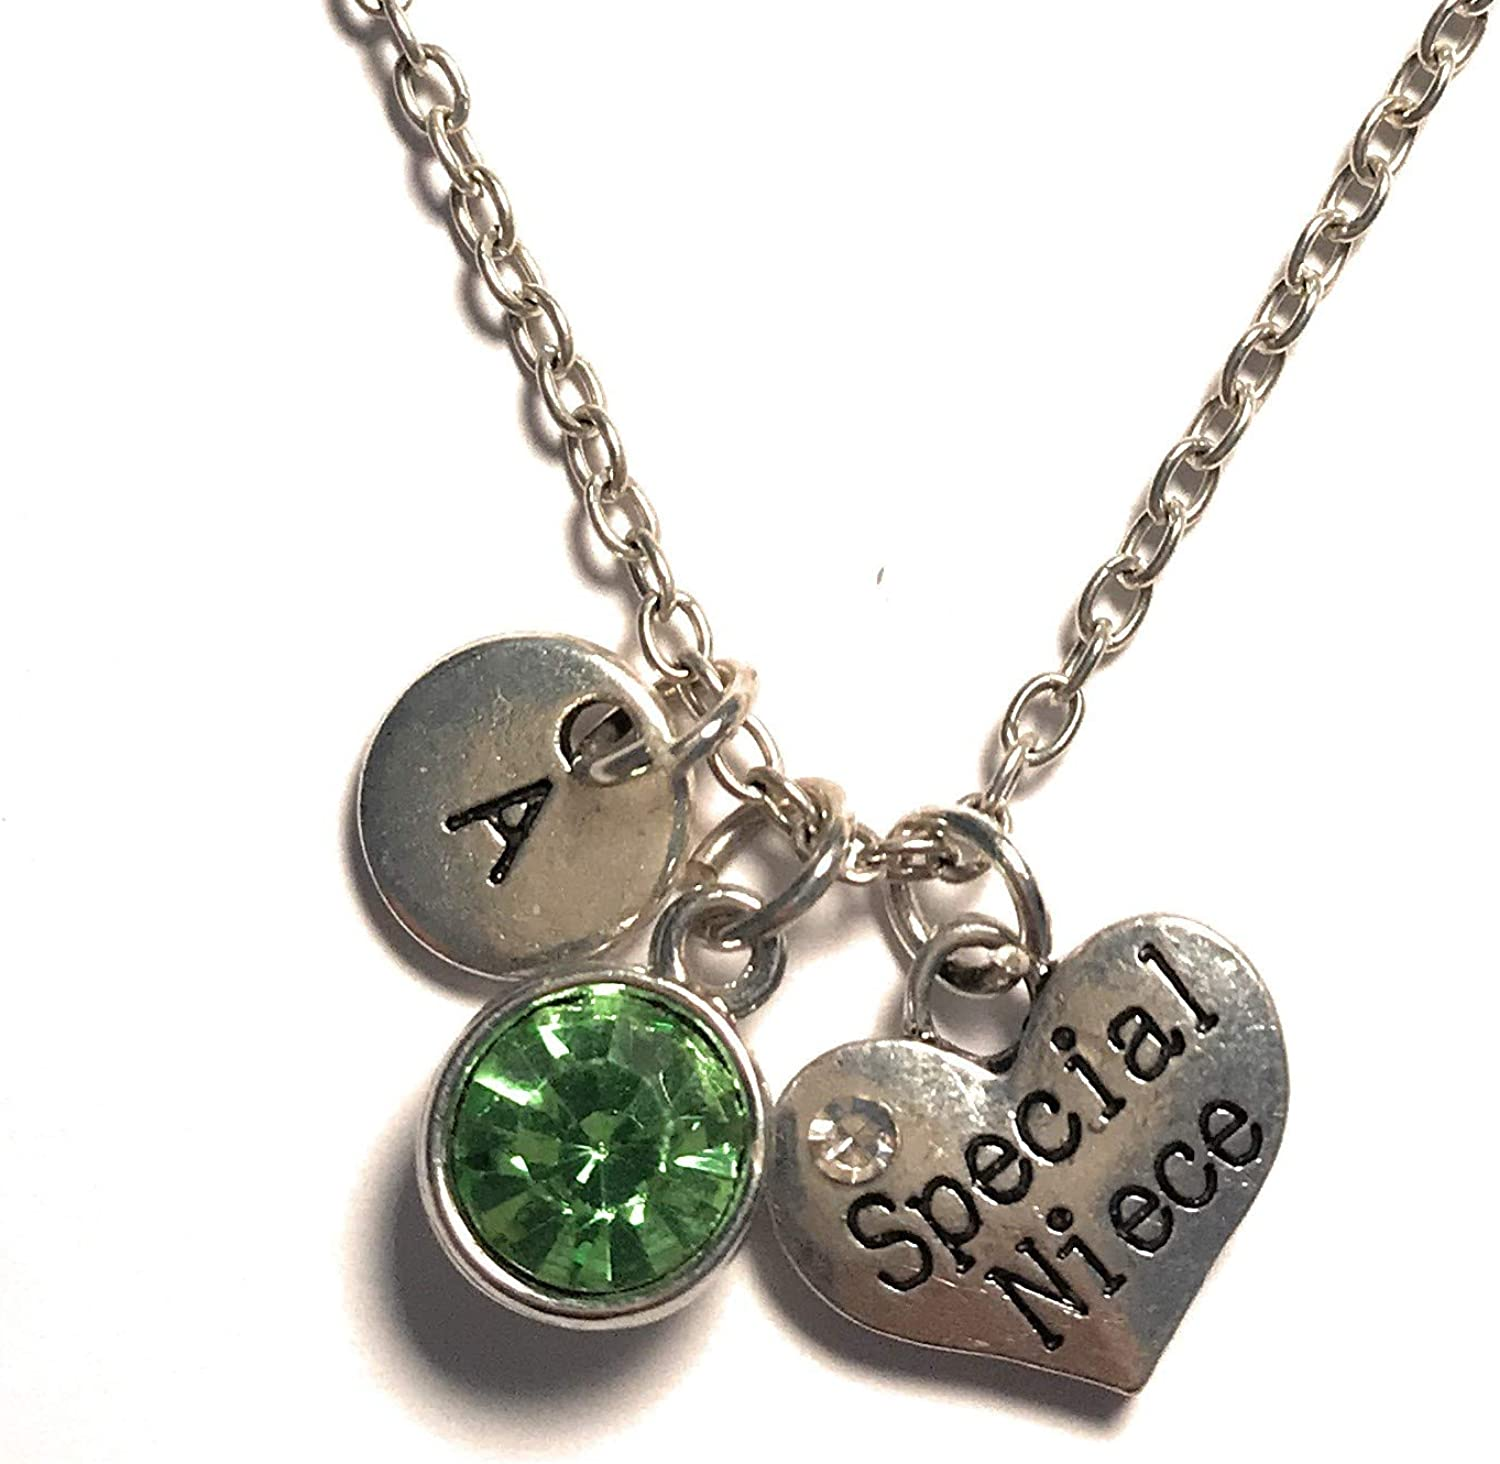 Special Niece Necklace Initial Letter Birthstone Silver Charm Pendant Customized Jewelry Gift